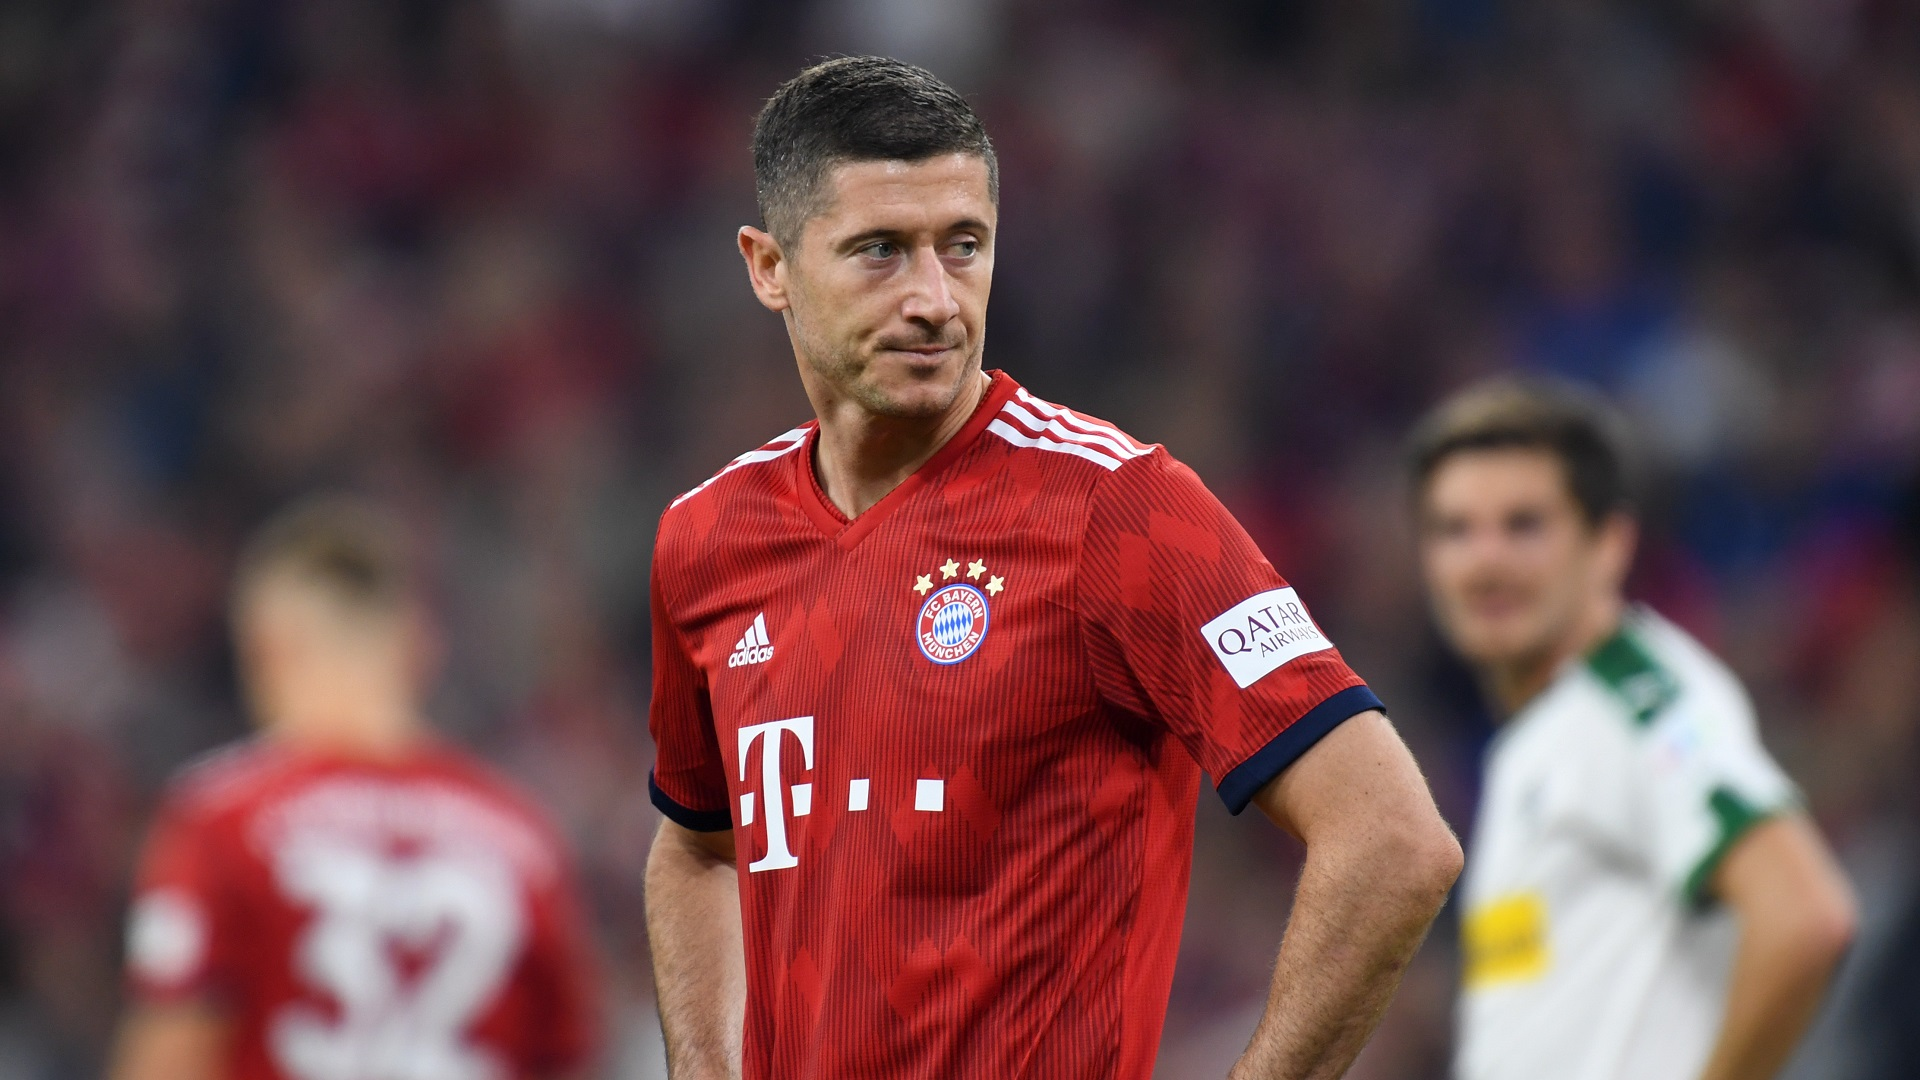 Bayern Munich bosses launch scathing attack on German media